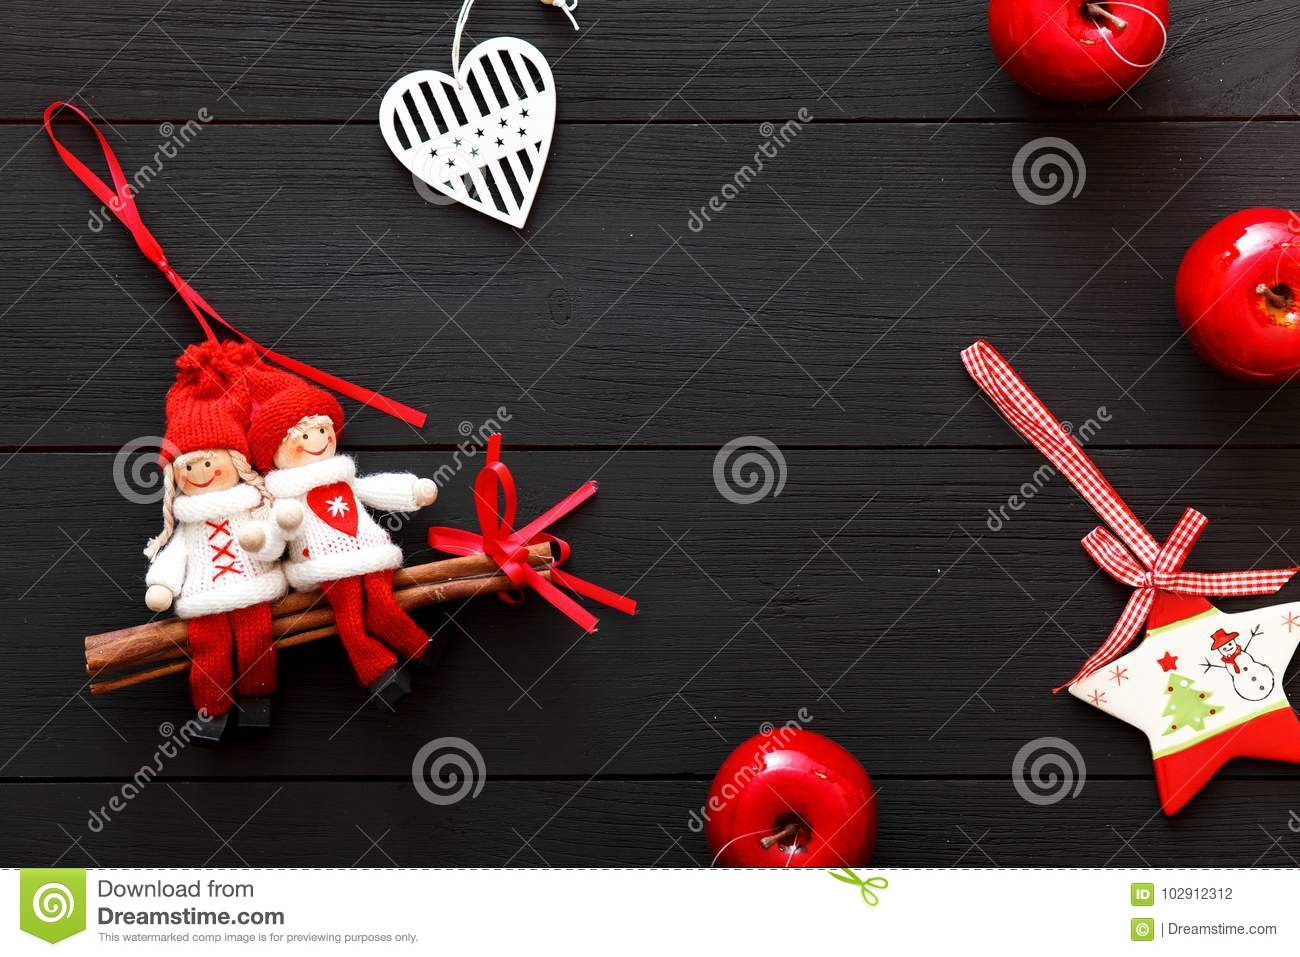 download handmade red white christmas decorations on black wooden background happy new 2018 year valentines